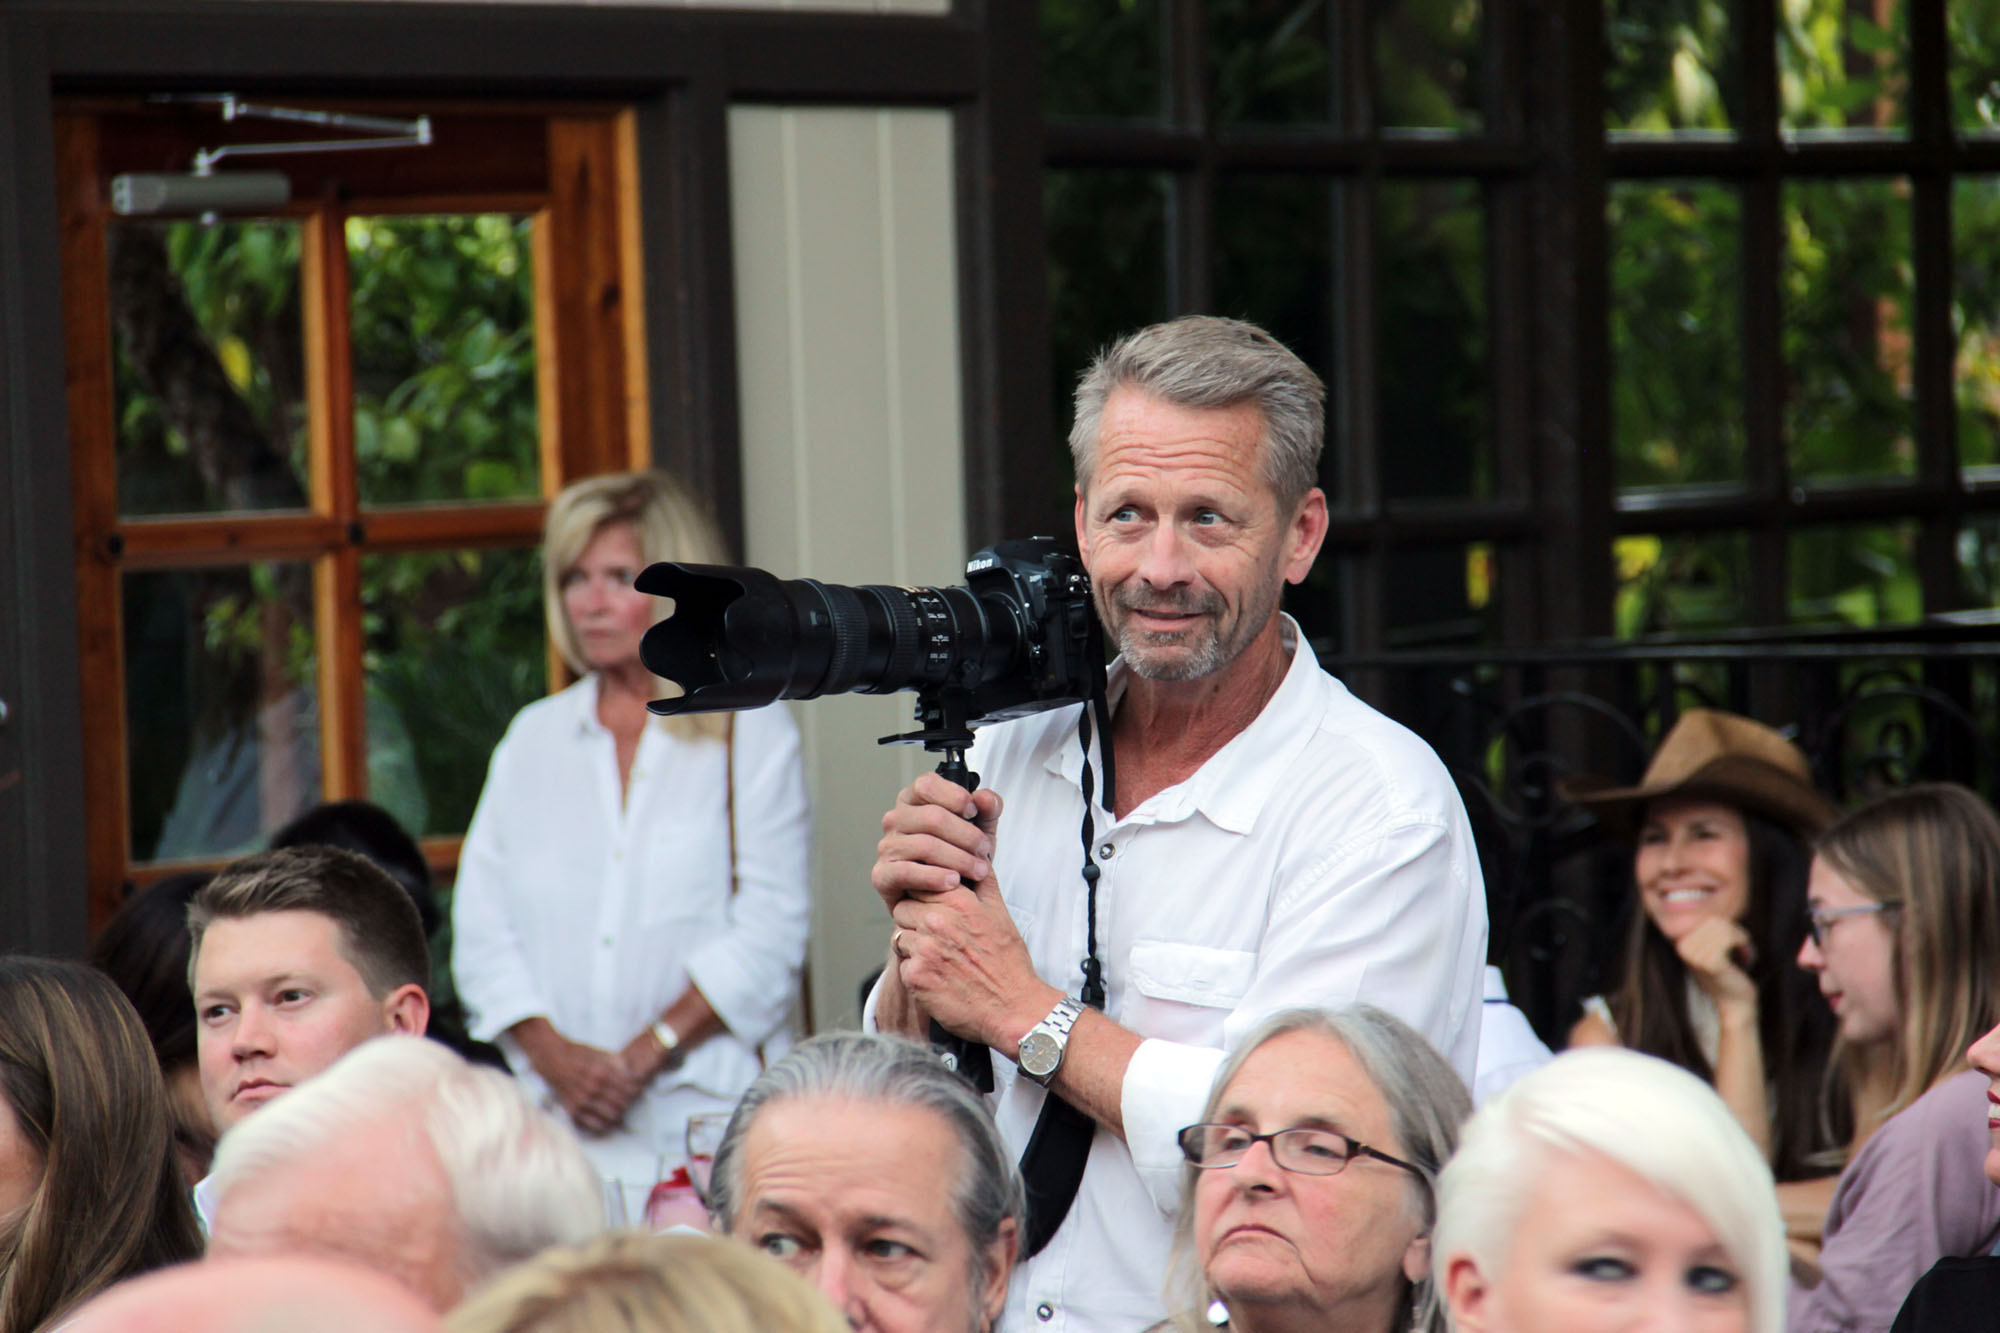 Scott Schmitt takes a quick break from photographing the San Juan Capistrano Chamber of Commerce's Annual Installation and Awards Banquet on Thursday, July 11, moments before he and his wife Diana Schmitt are recognized with the Lifetime Achievement Award. Photo: Shawn Raymundo